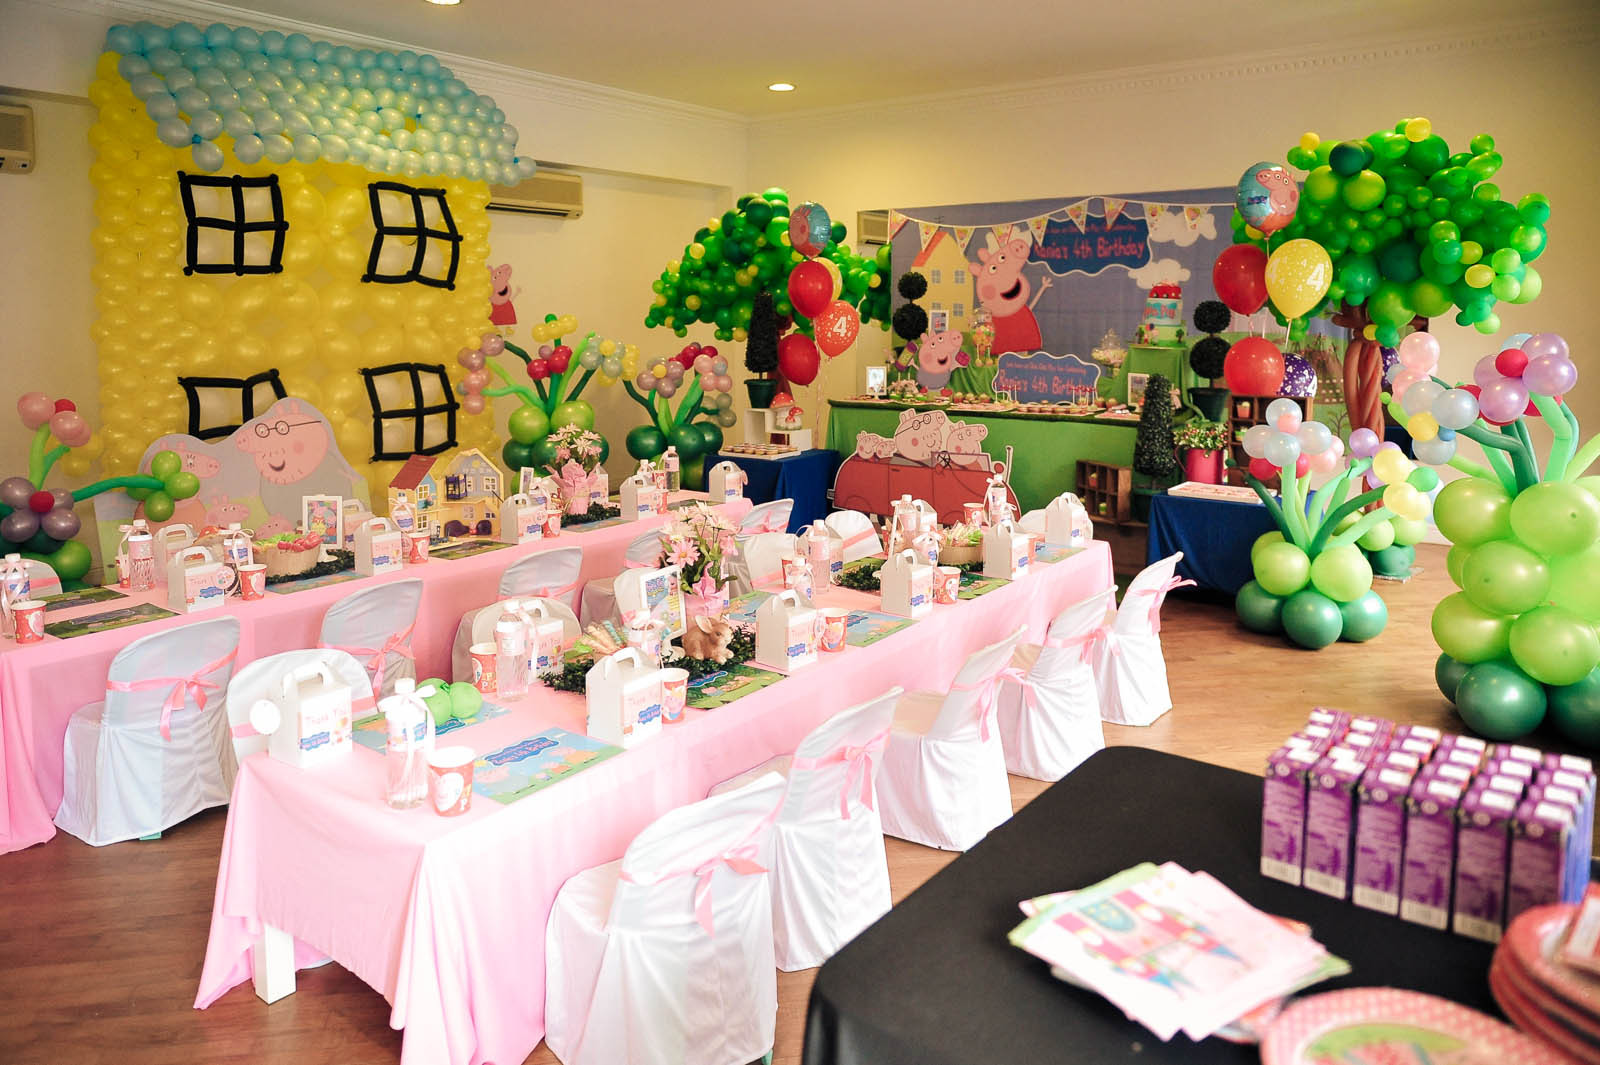 Best ideas about Peppa Pig Birthday Decorations . Save or Pin Sandy Party Decorations Now.